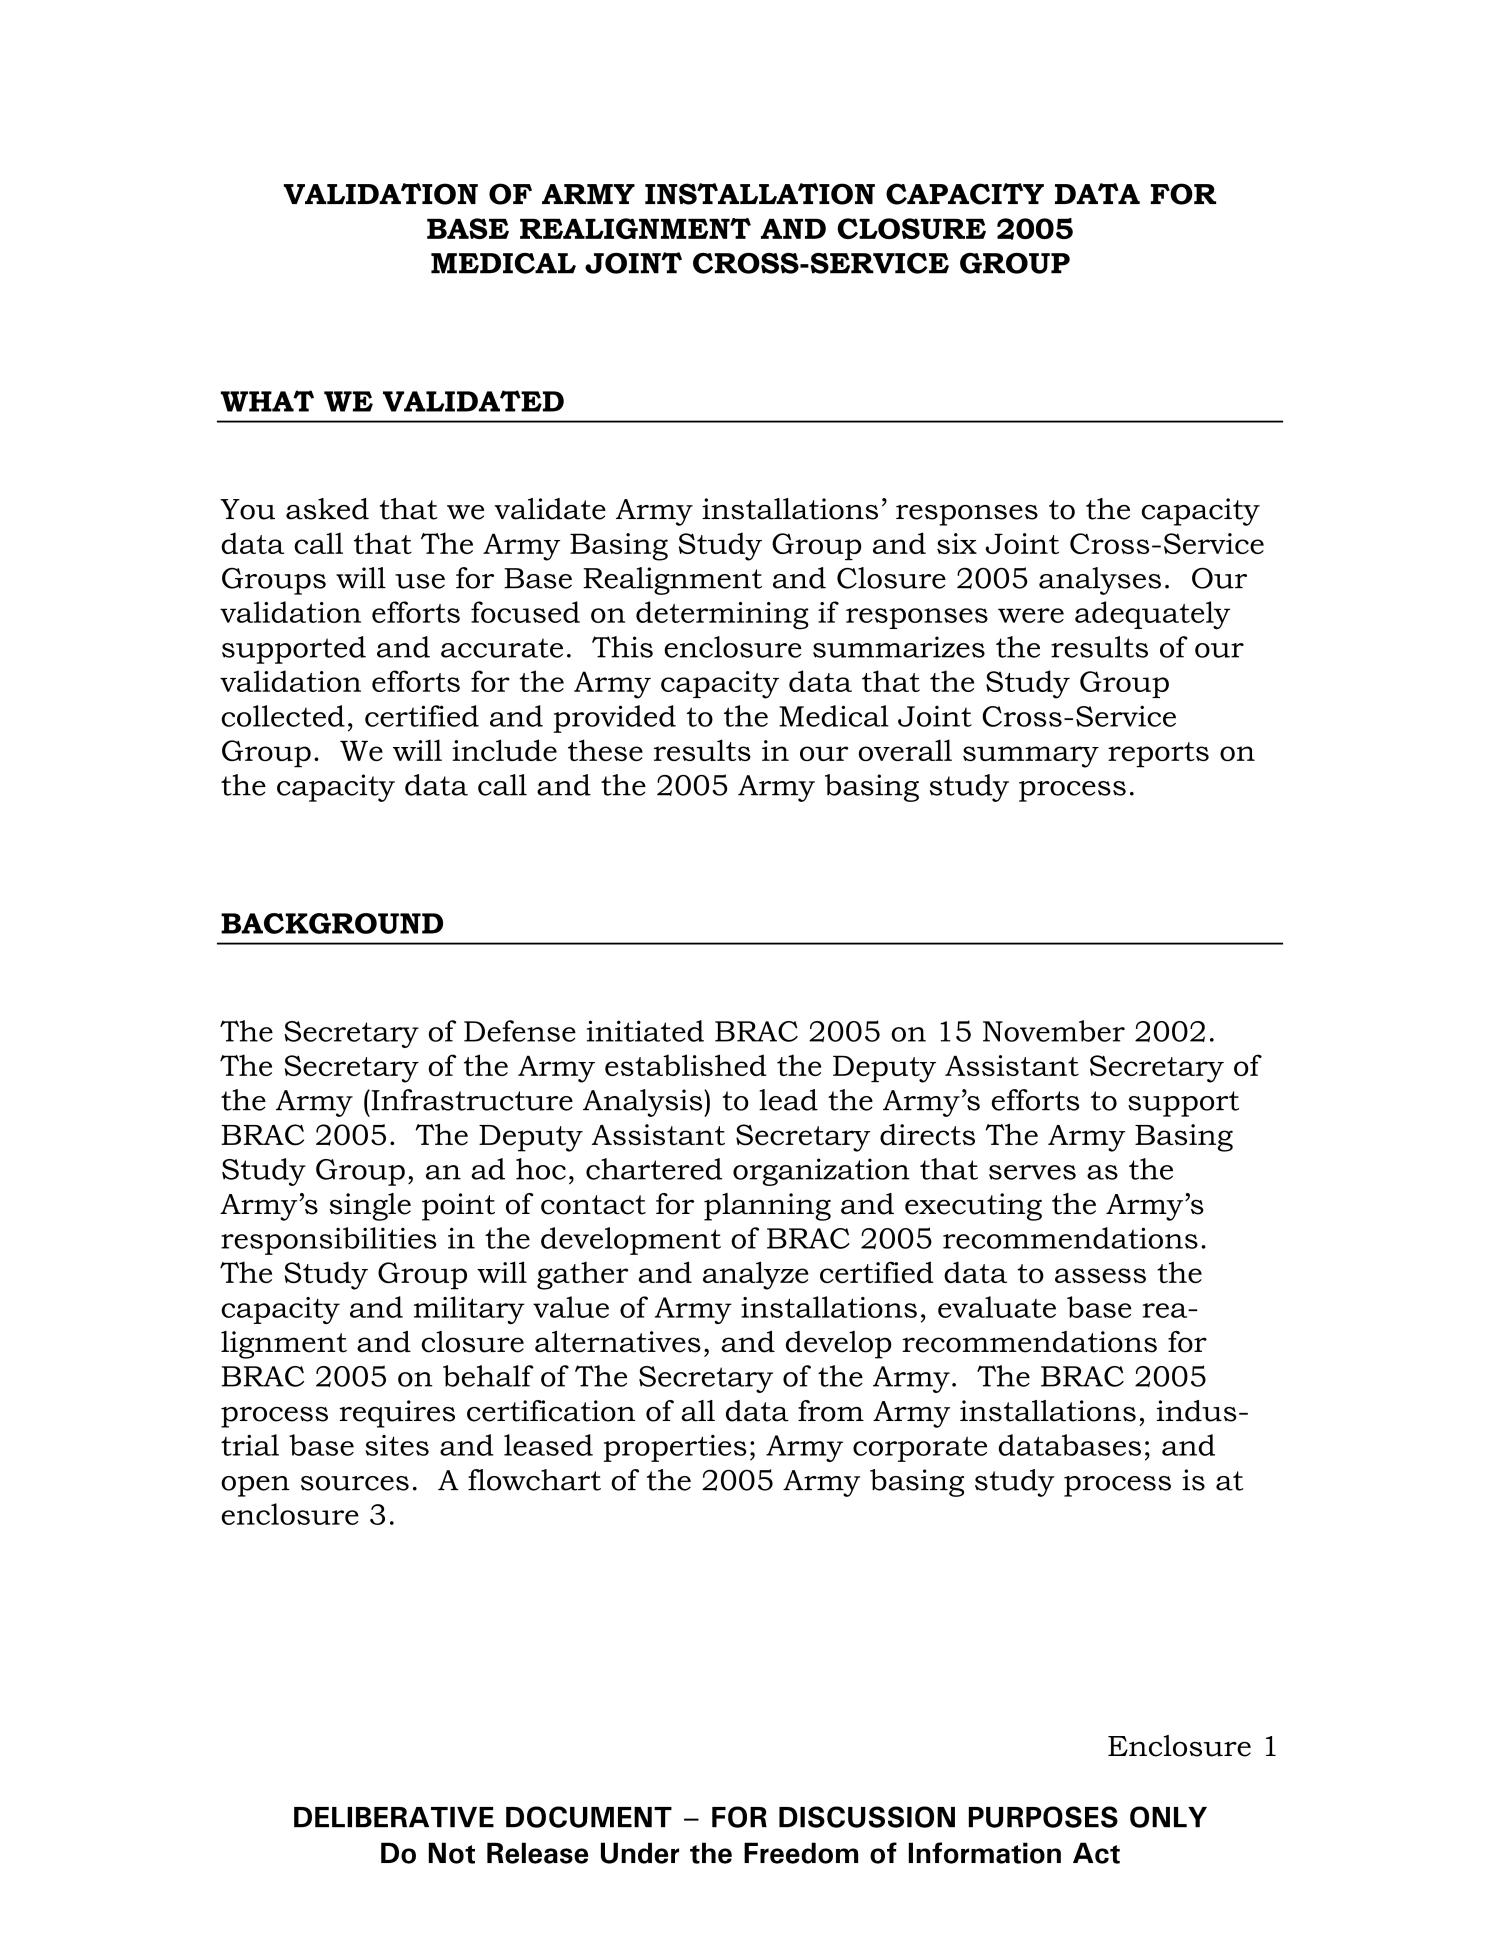 MEMORANDUM FOR The Director, The Army Basing Study Group Validation of Army Installation Capacity Data for Base Realignment and Closure 2005, Medical Joint Cross-Service Group dated 5 Aug 2004                                                                                                      [Sequence #]: 3 of 9